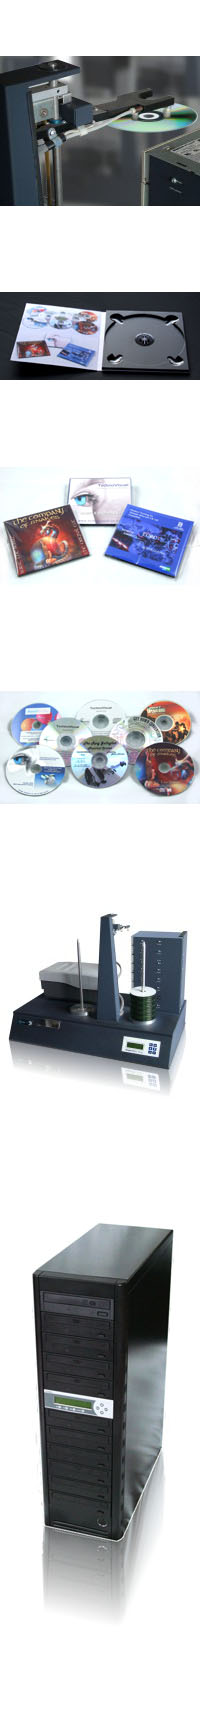 CD & DVD Duplication and Printing Services